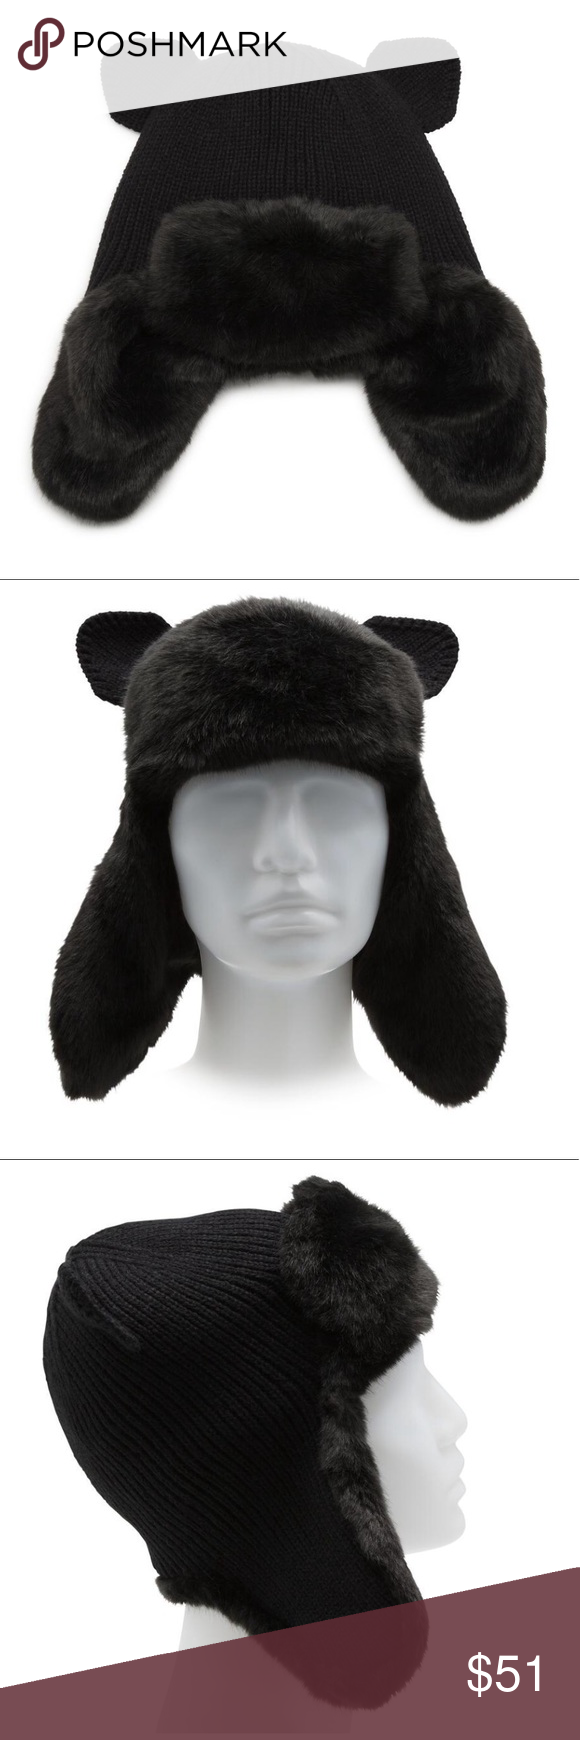 c5bce41cbea Karl Lagerfeld Faux Fur Kitty Trapper Hat NWT Karl Lagerfeld Faux Fur Kitty  Trapper Hat New